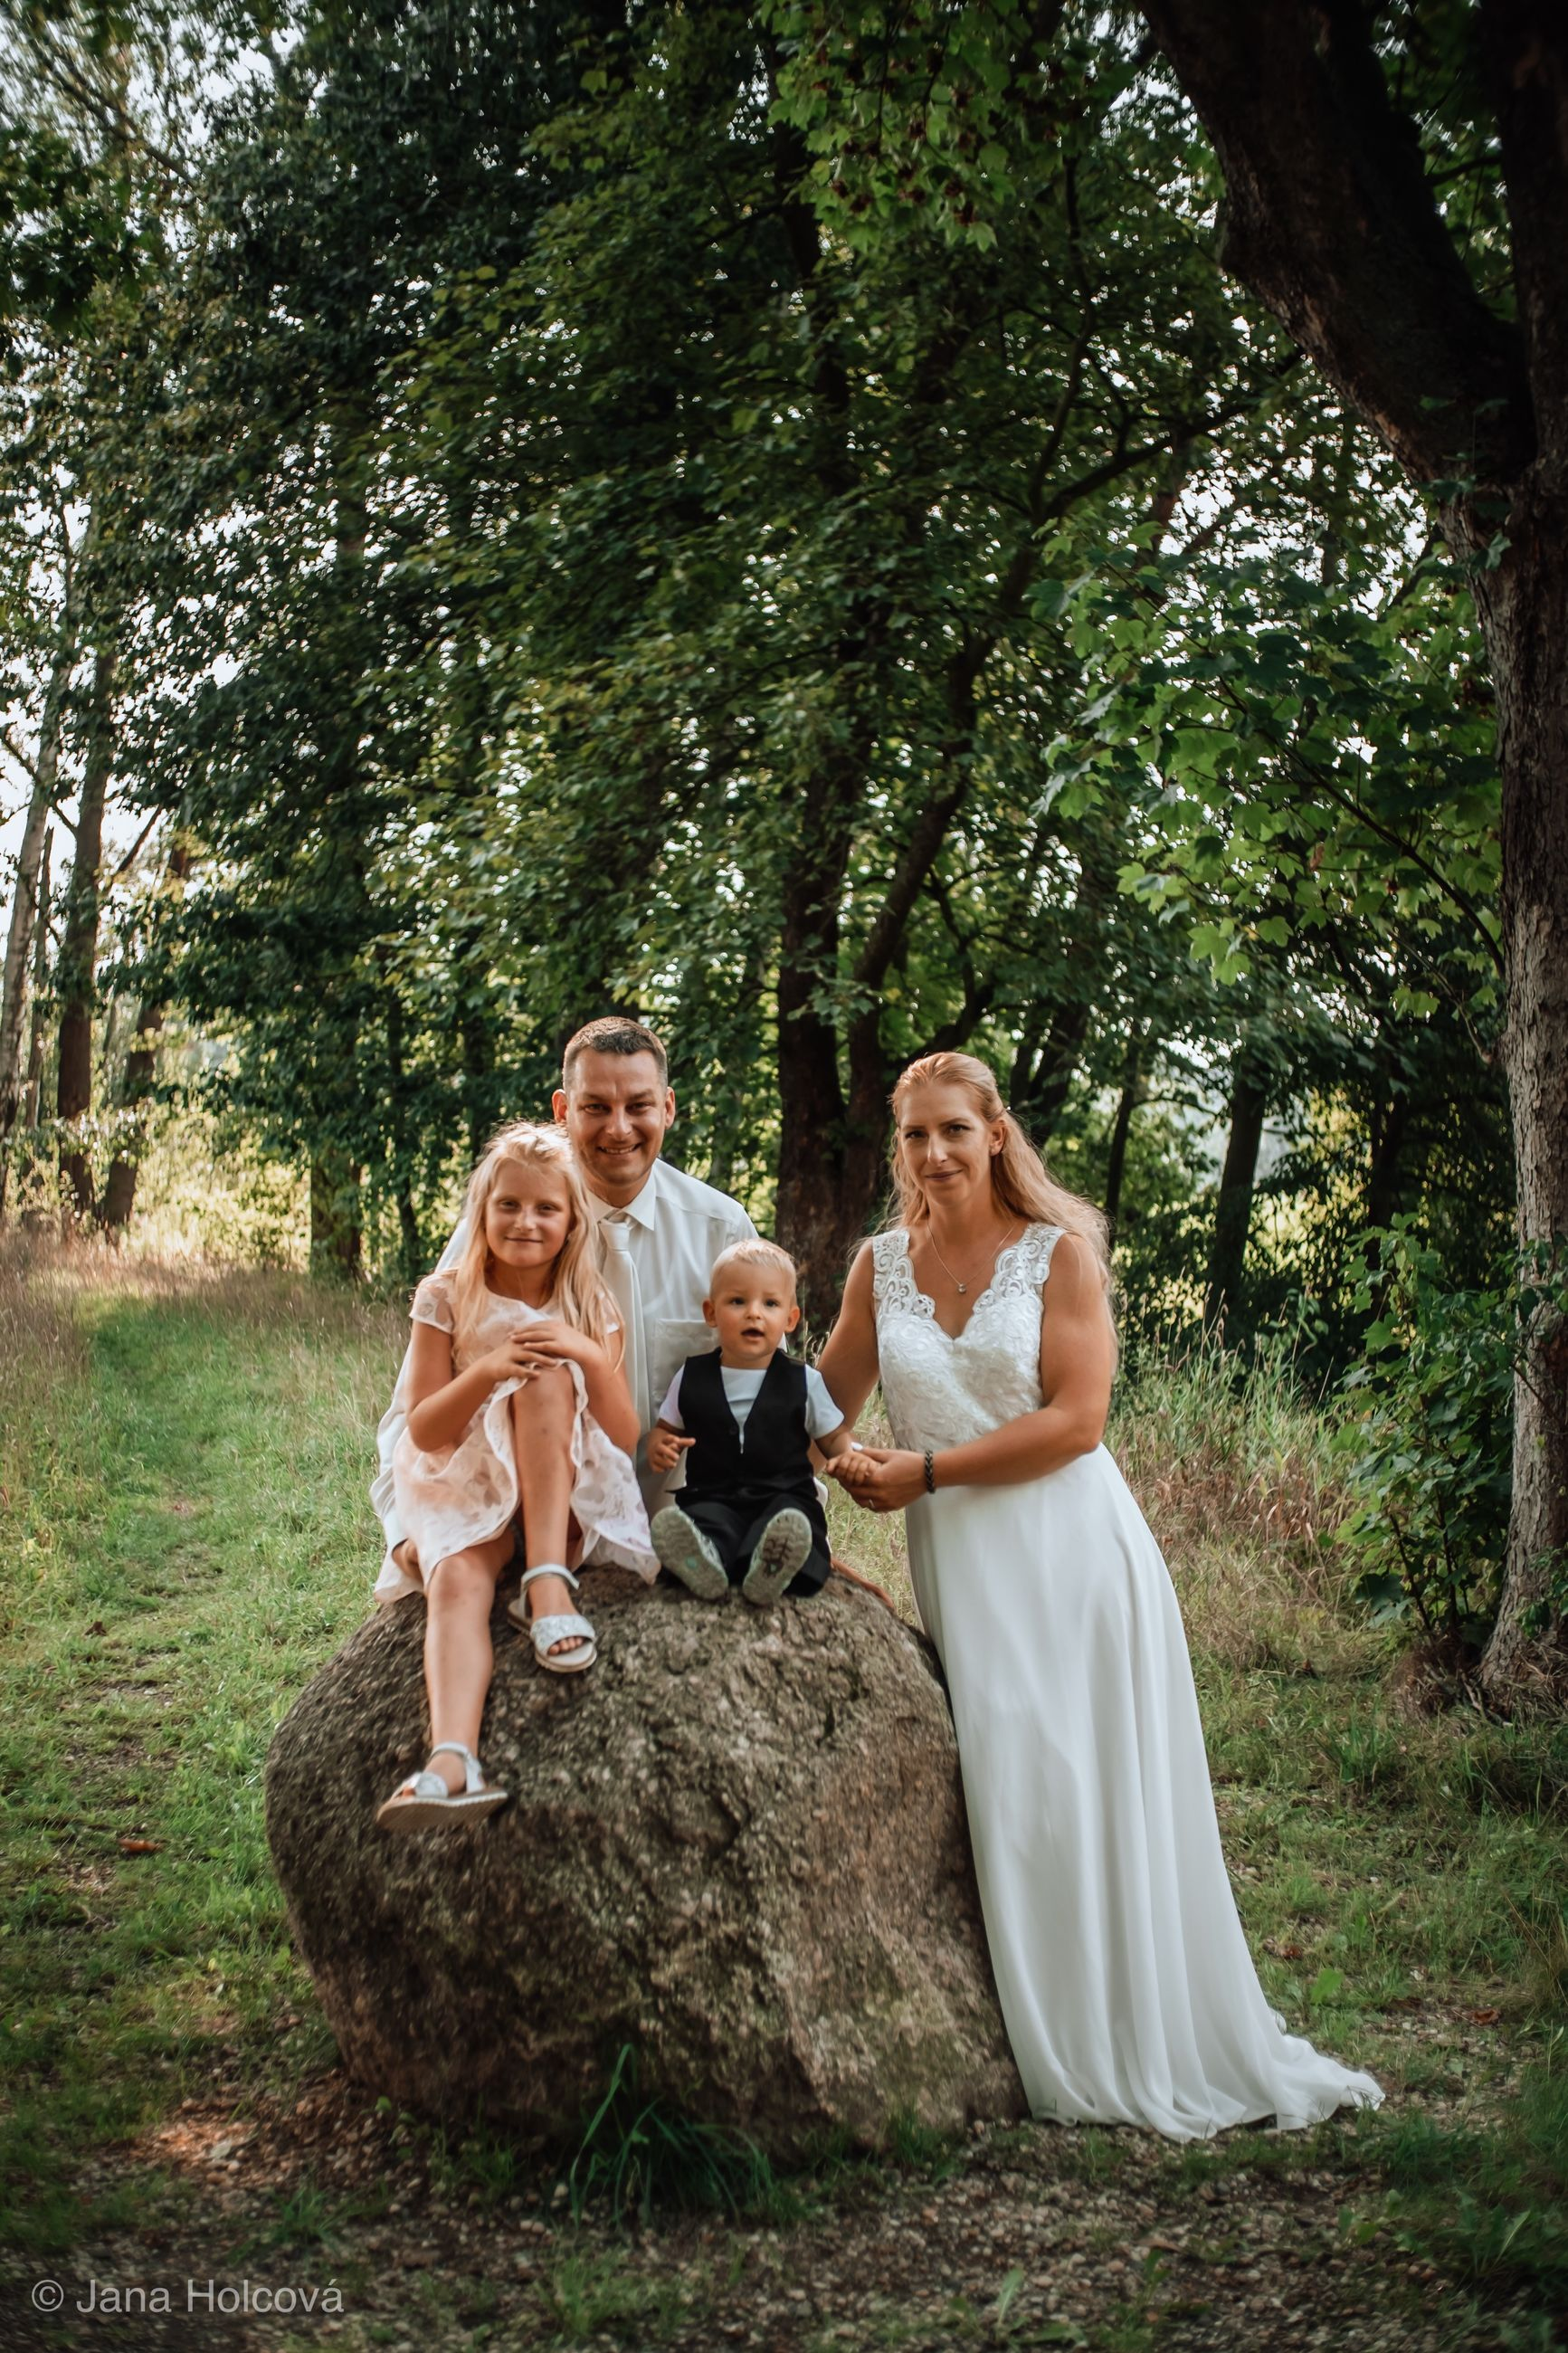 tree, women, adult, men, plant, full length, emotion, newlywed, wedding, happiness, celebration, couple - relationship, bride, smiling, togetherness, females, day, real people, group of people, positive emotion, outdoors